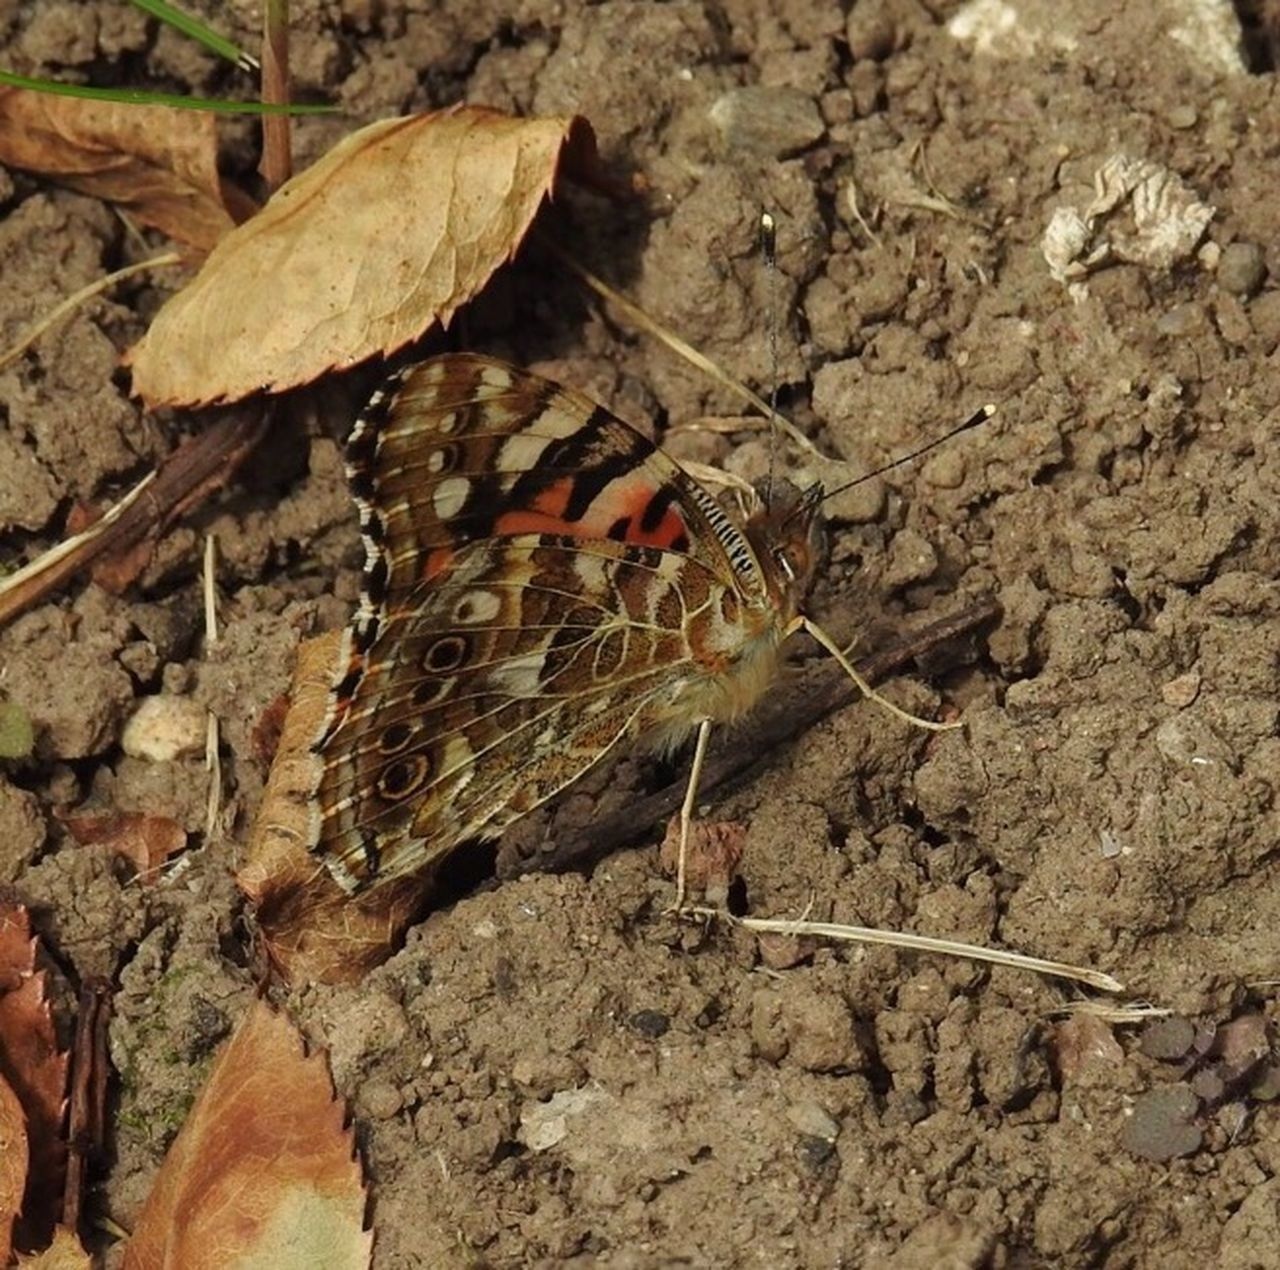 Natural World Nature Photography Wildlife Photography No People Wildlife & Nature Painted Lady Butterfly - Insect Butterfly Butterflies